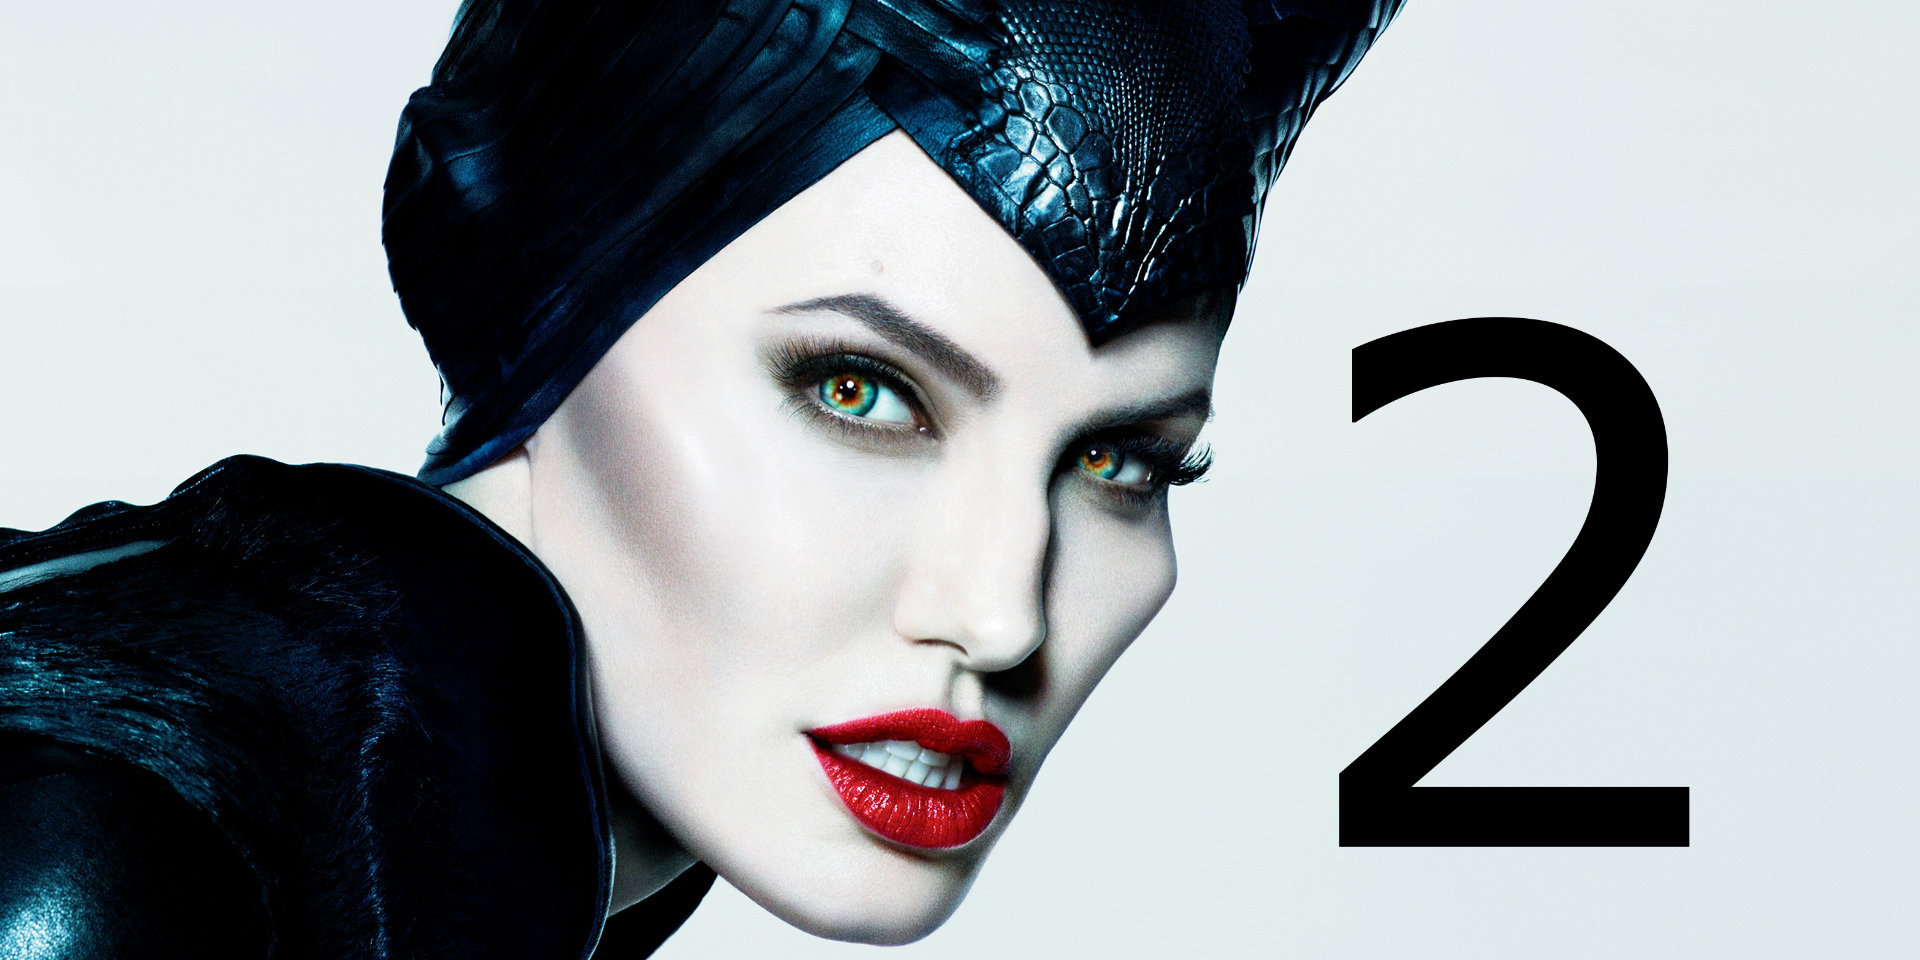 maleficent - photo #7